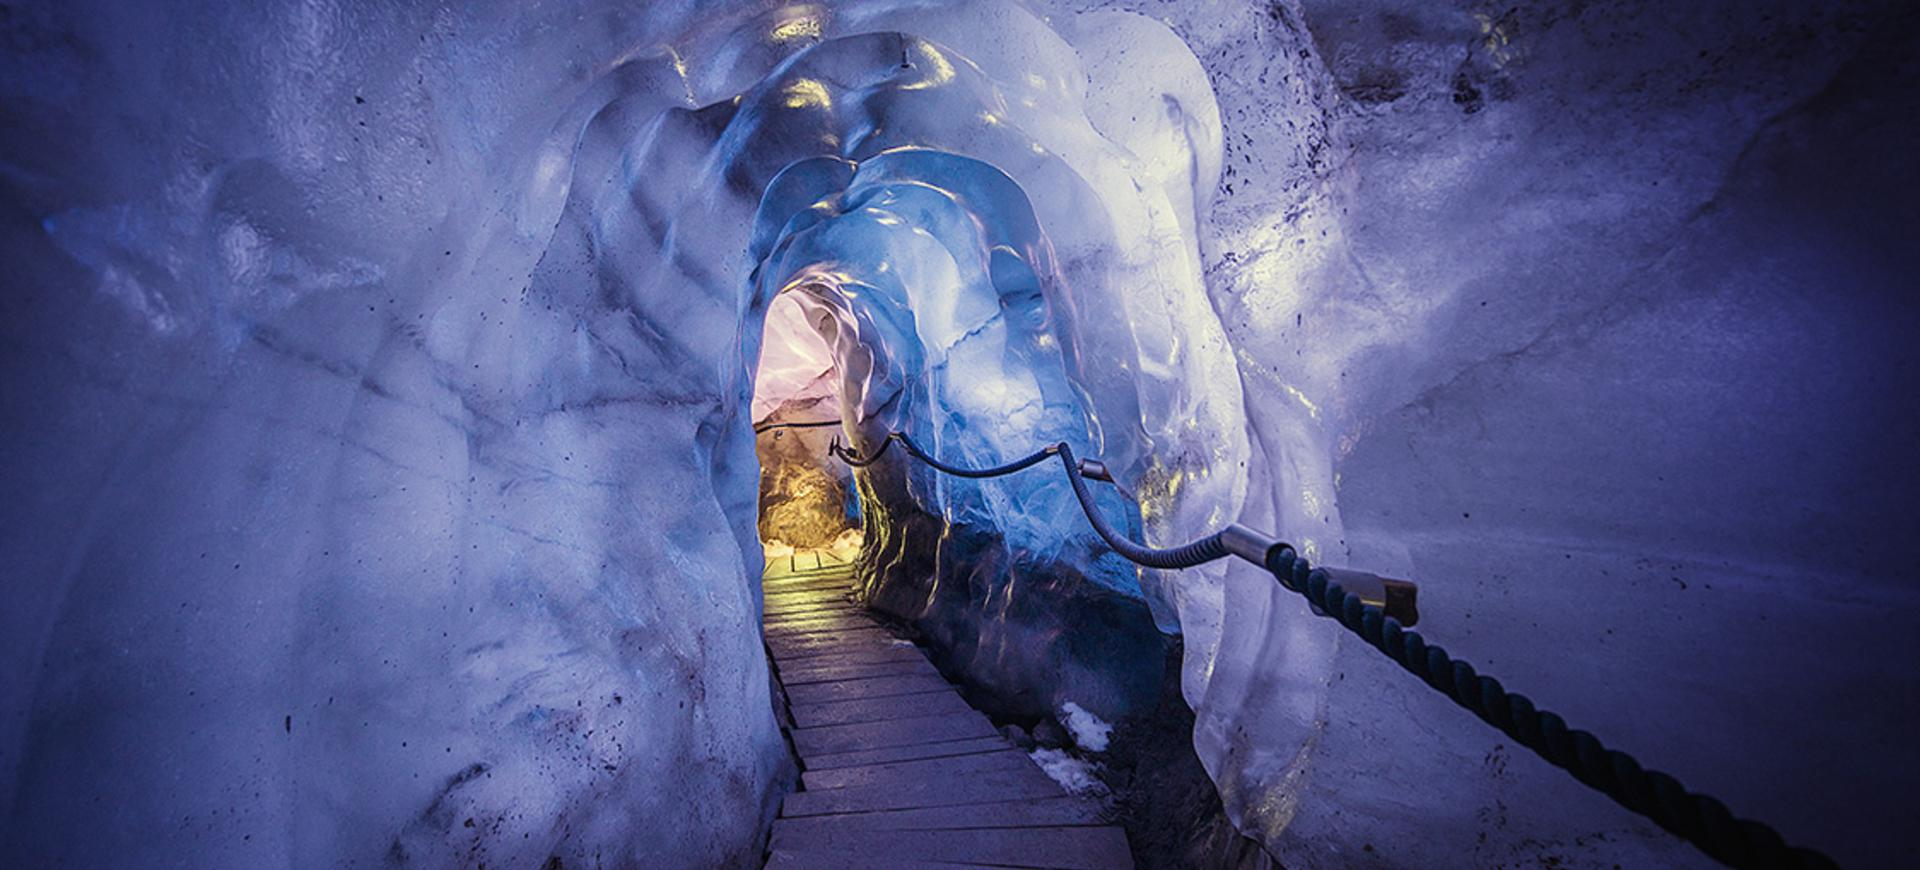 Experience the glacial ice first hand 30 metres below the piste. Only a short walk from the Eisgrat mountain station.